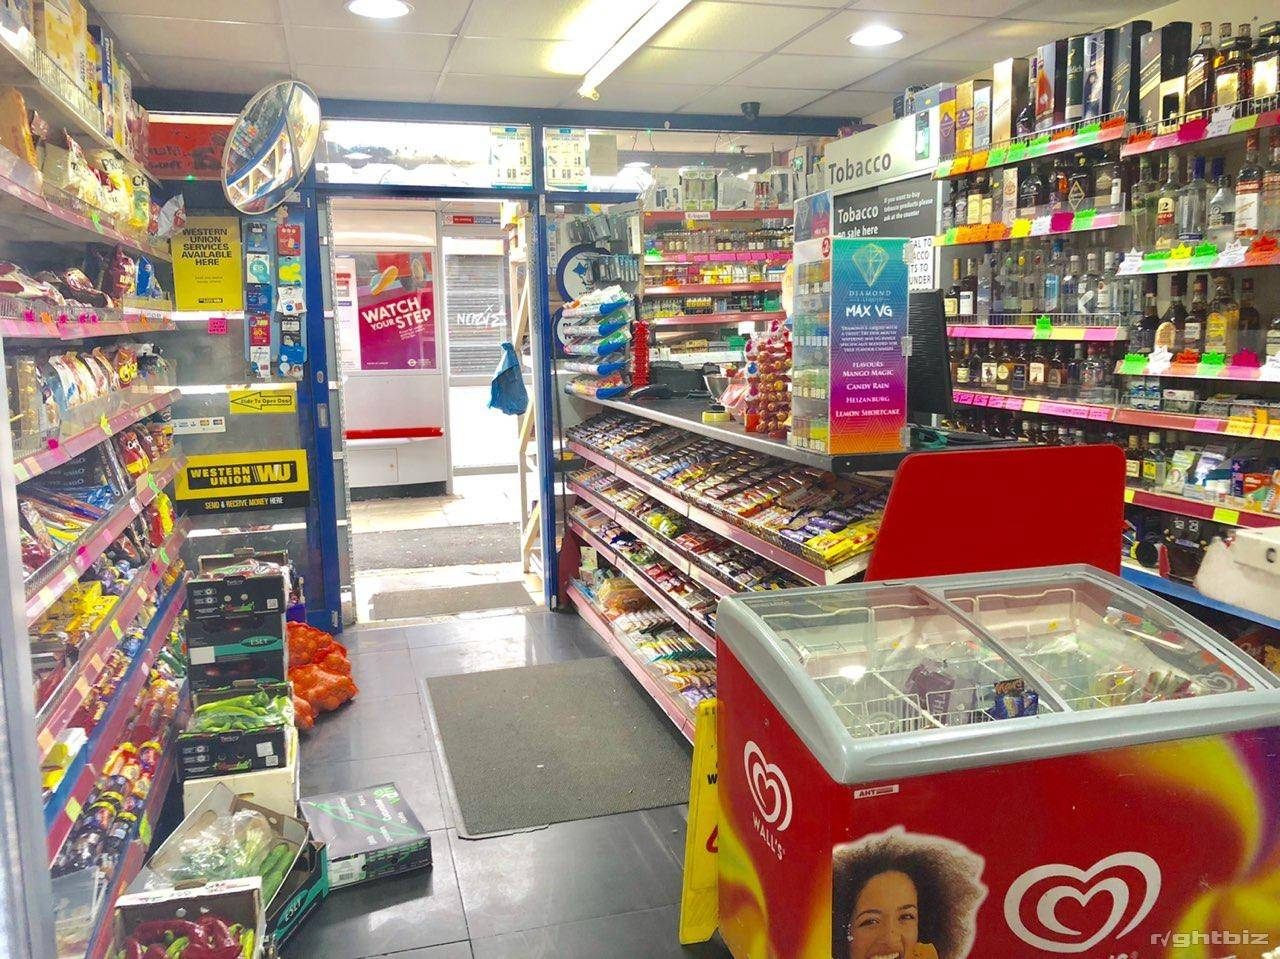 Off License & Grocery for Sale in Goodmayes Ilford IG3 9UN - Image 1